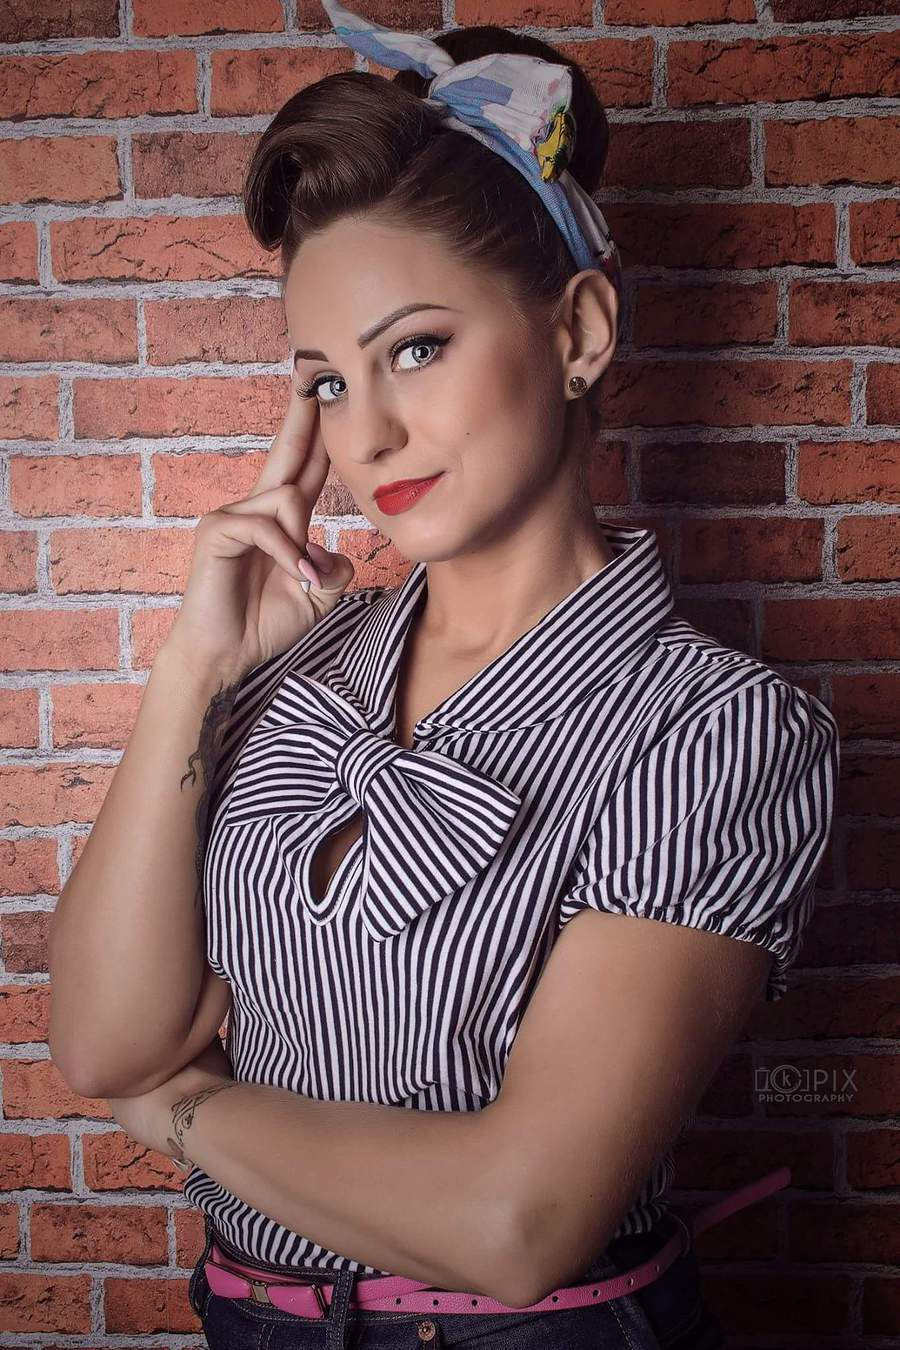 Pinup Girl / Photography by kpix photography / koro / Uploaded 21st March 2017 @ 03:16 PM